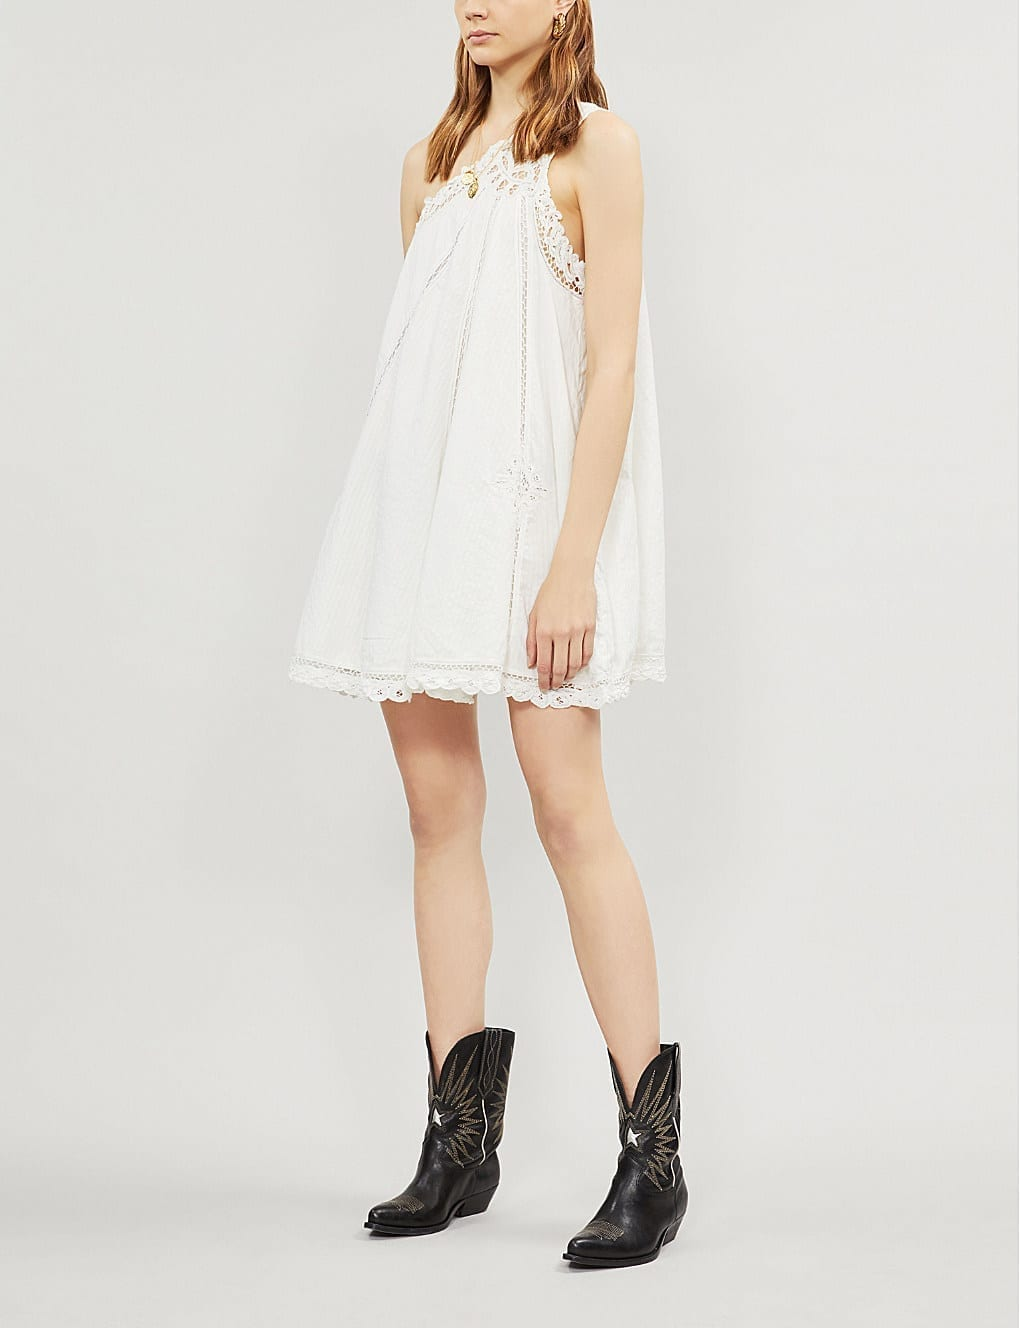 FREE PEOPLE Billie Battenburg One-shoulder Cotton Mini Ivory Dress